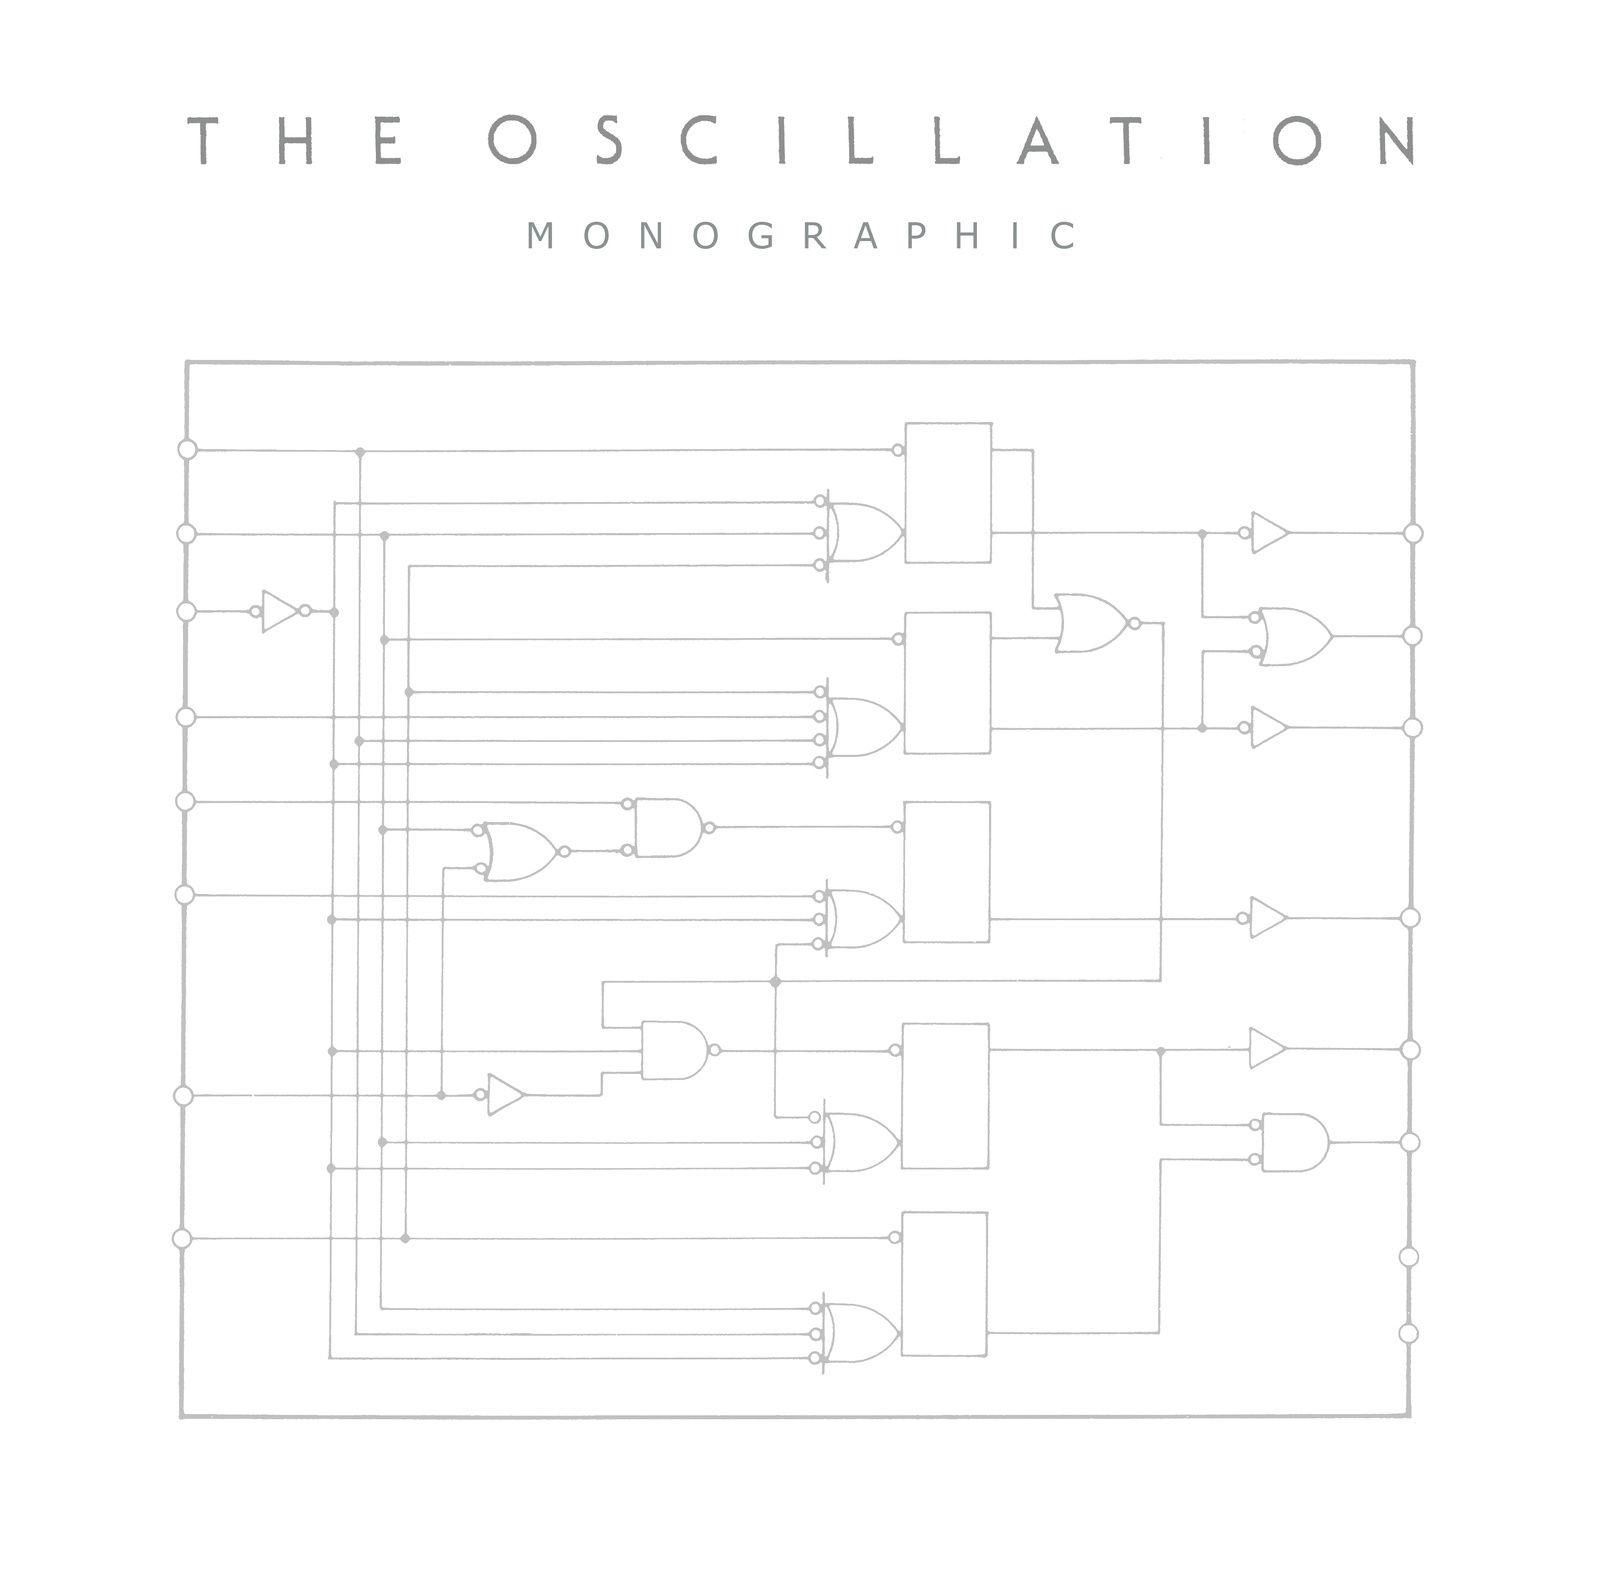 THE OSCILLATION - Monographic (2016)